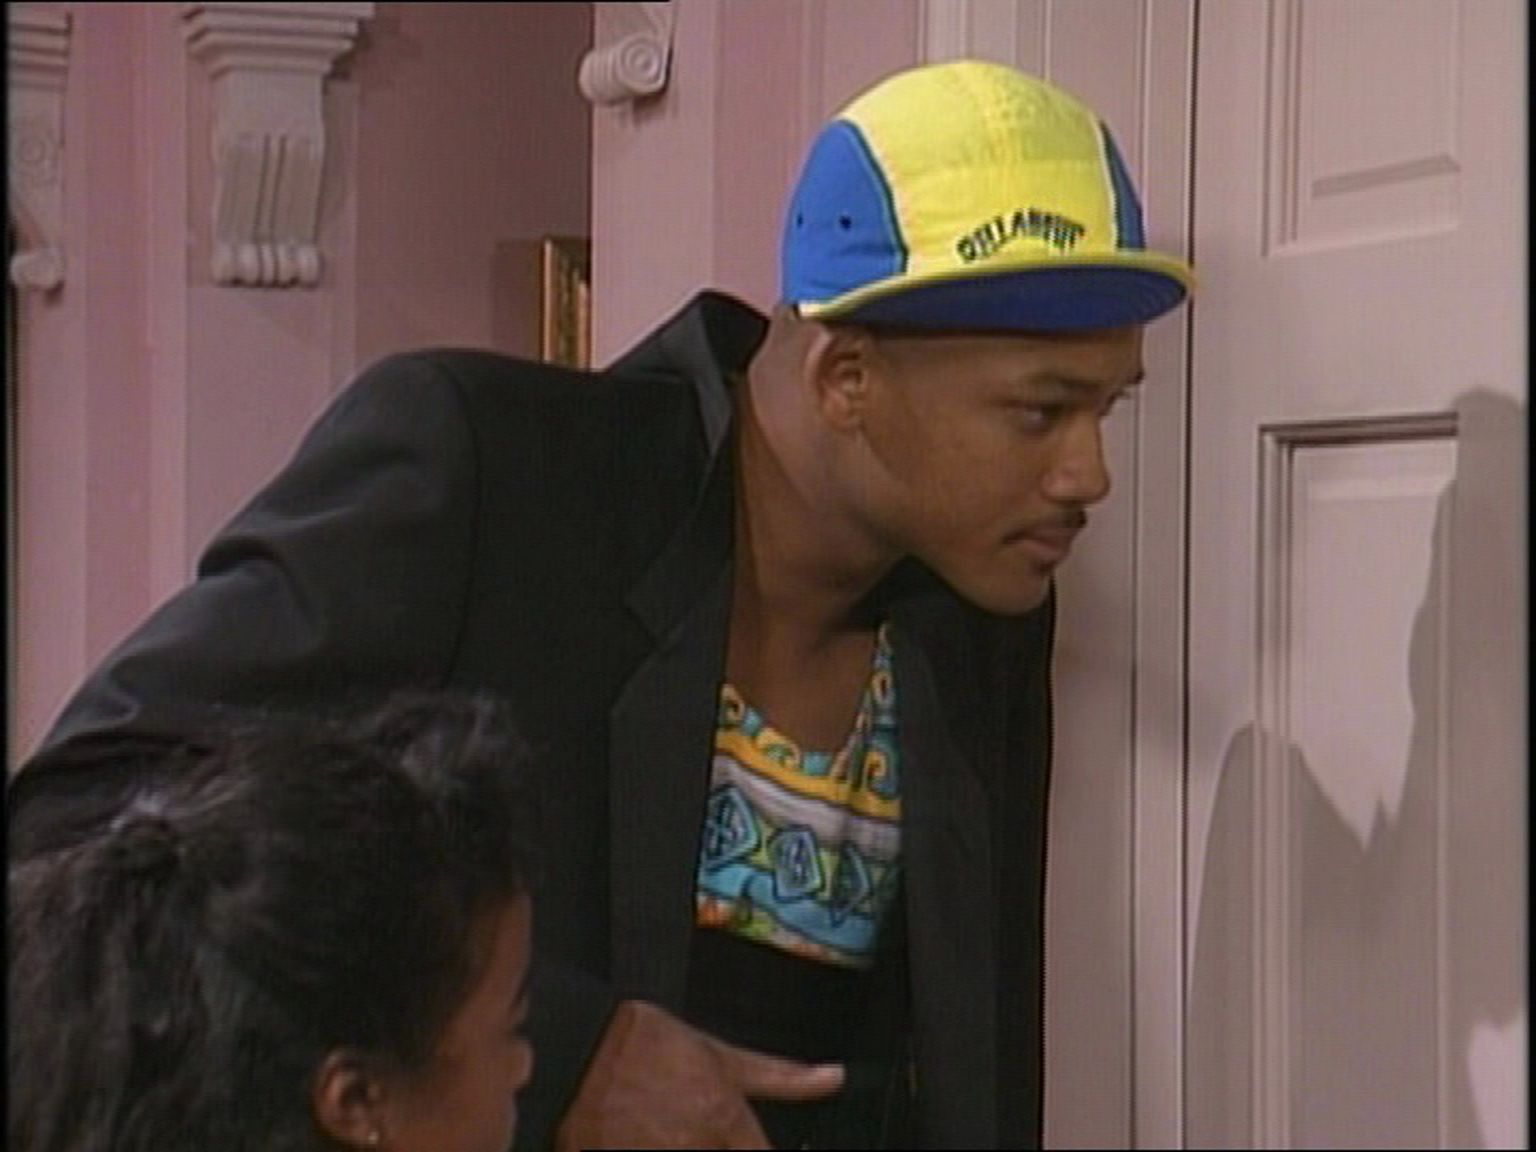 The-Fresh-Prince-of-Bel-Air-1x01-The-Fresh-Prince-Project-the-fresh-prince-of-bel-air-20895847-1536-1152